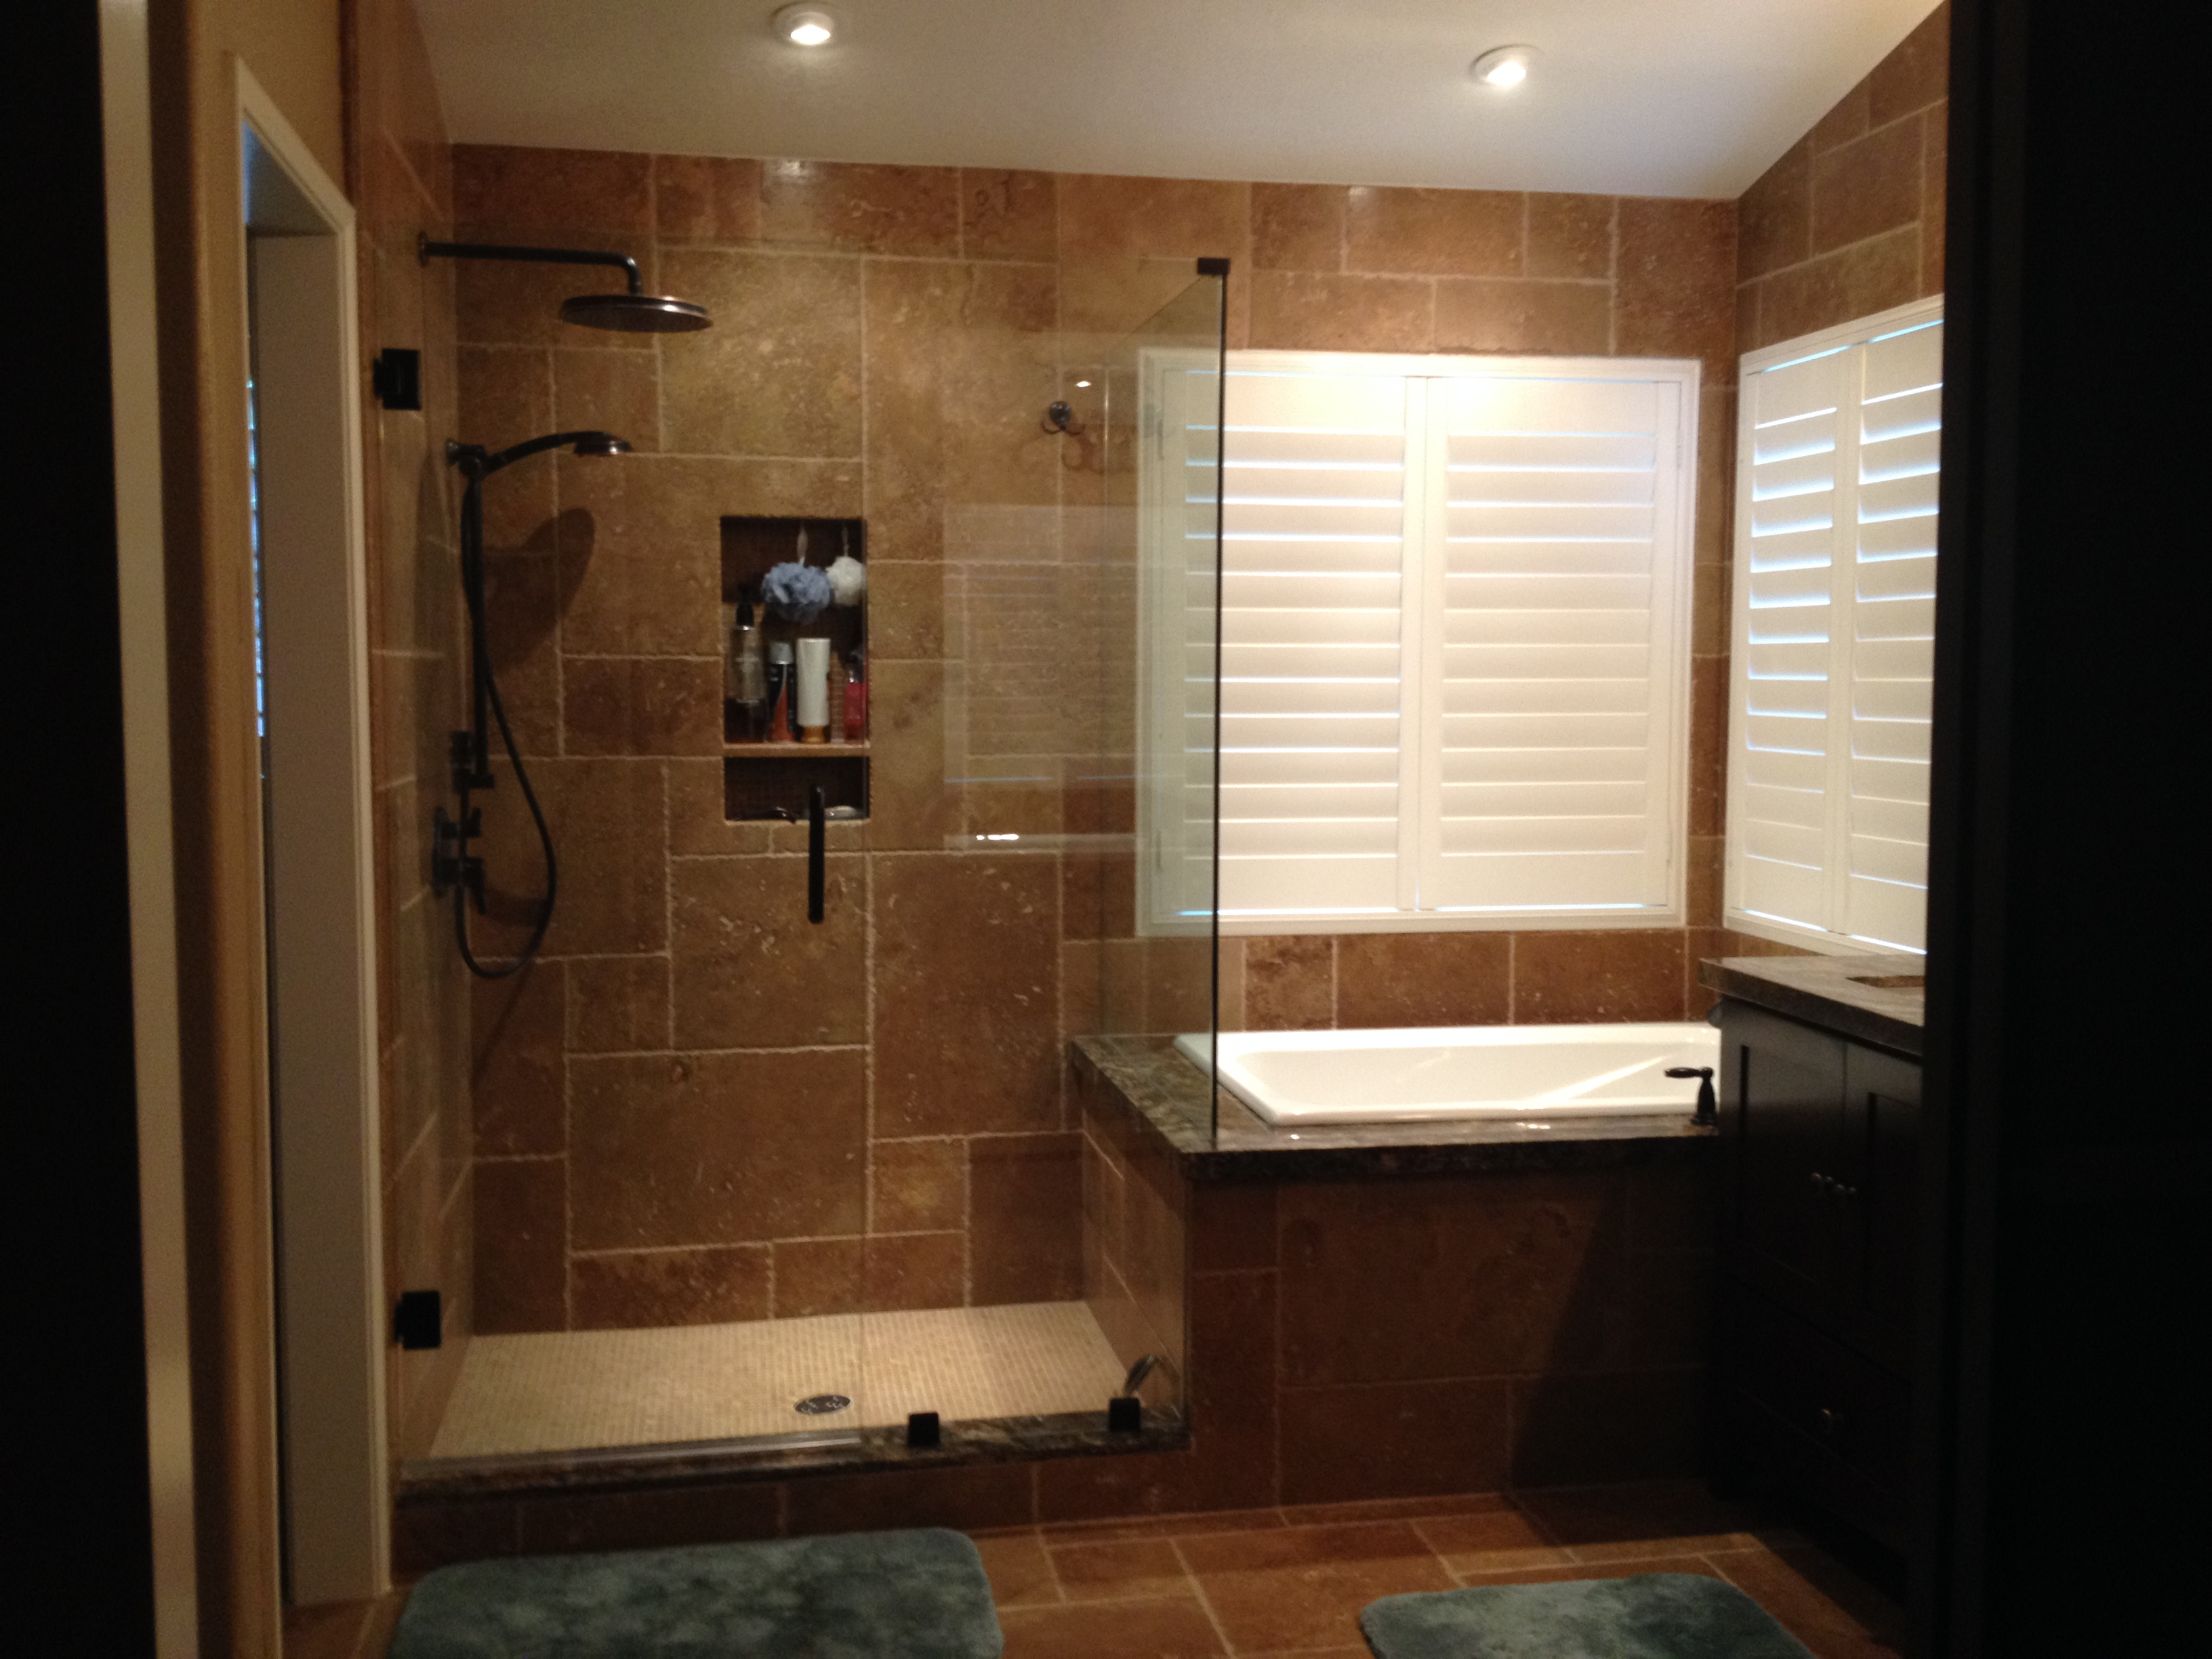 Pictures of our 23 922 bathroom remodel and some lessons for Bathroom remodel photo gallery